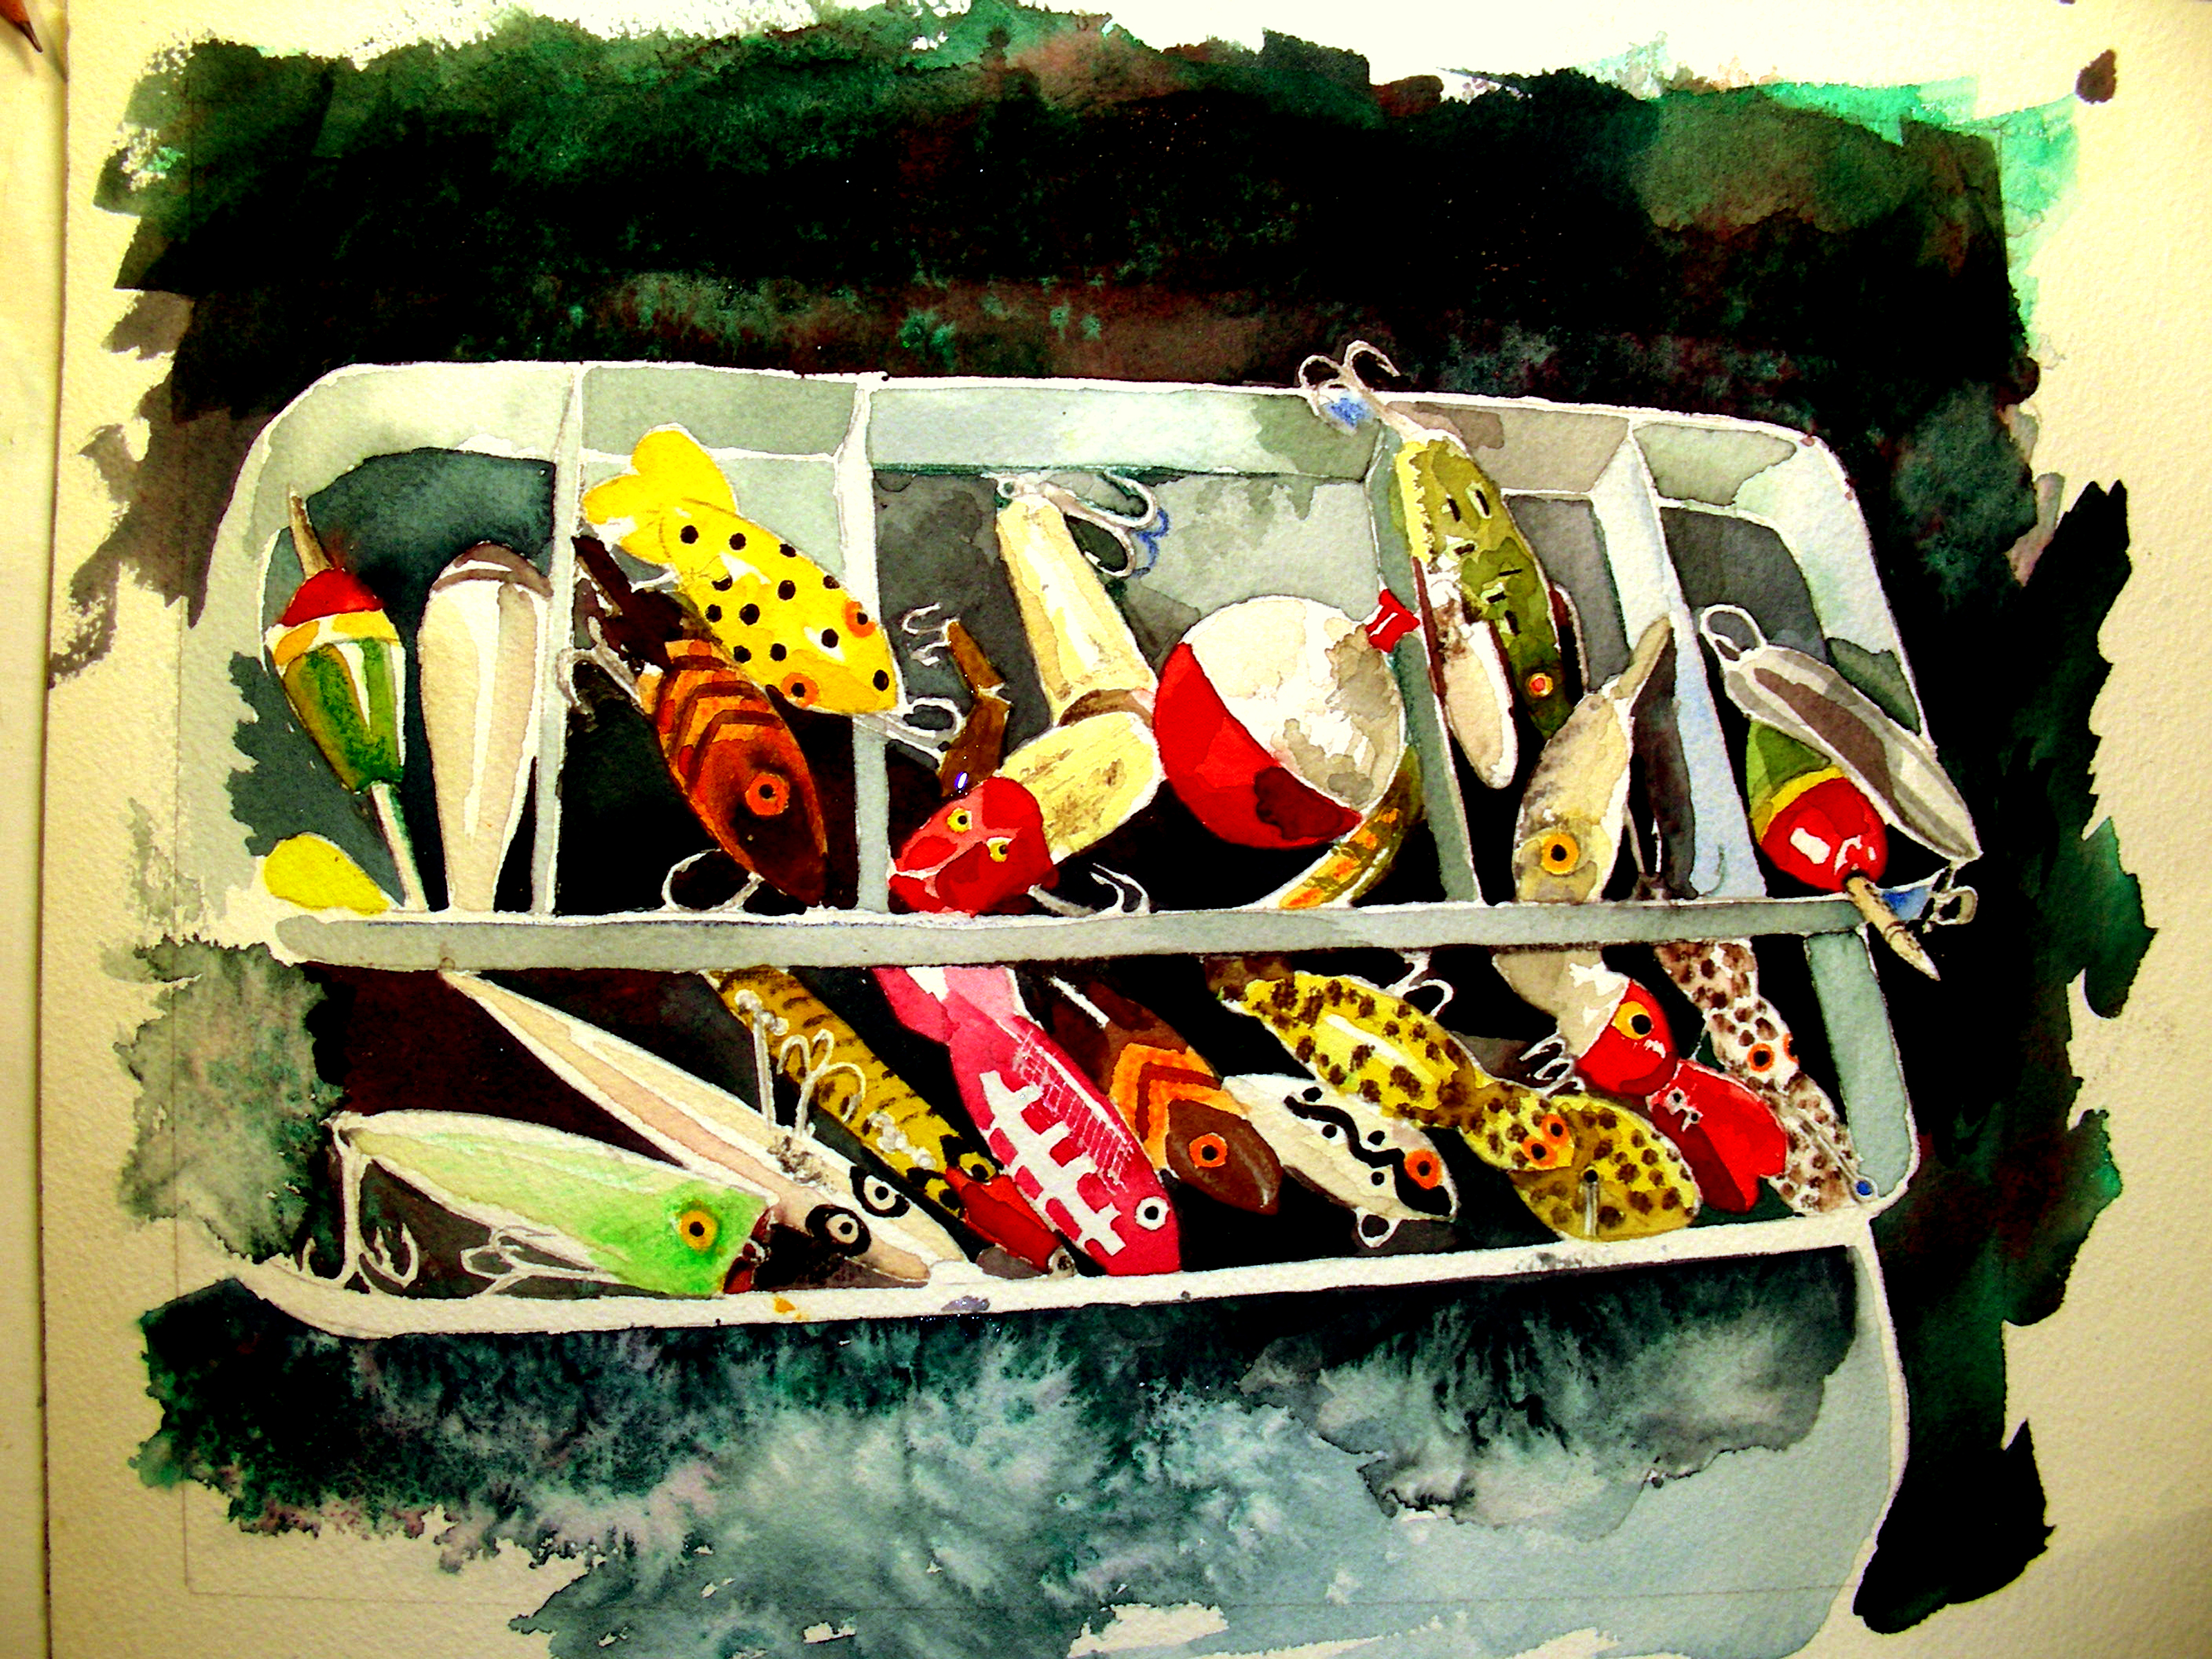 Vintage fishing lures recollections 54 the art of david for Fish and tackle